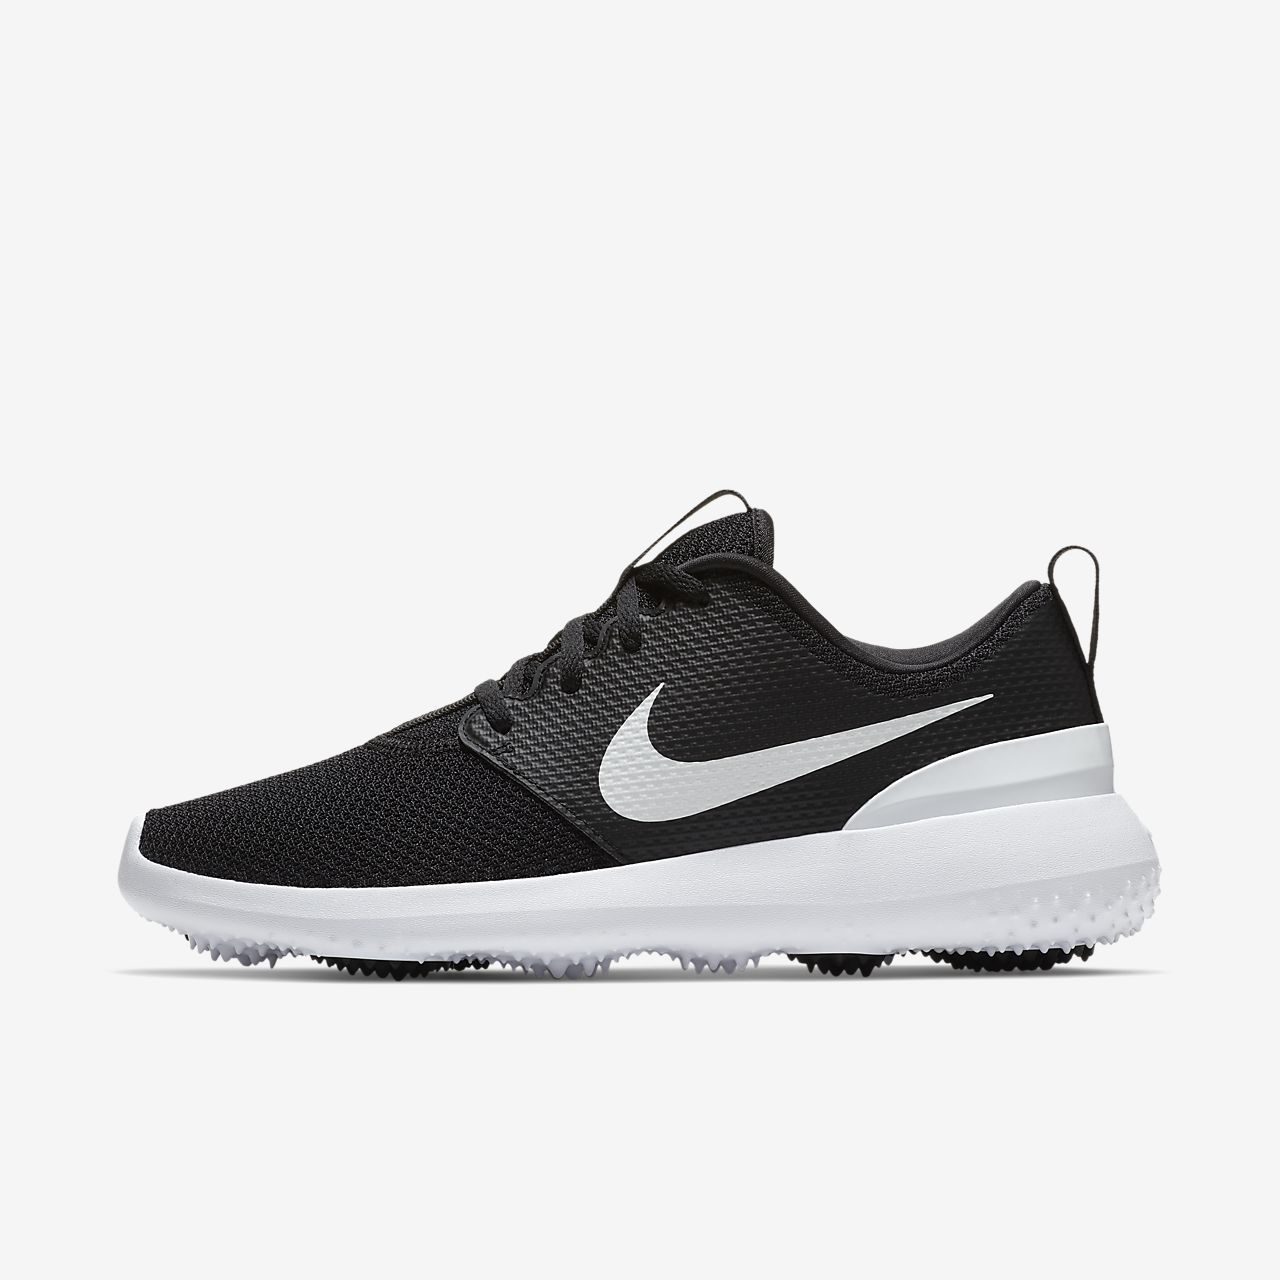 los angeles 9da60 24205 Womens Golf Shoe. Nike Roshe G